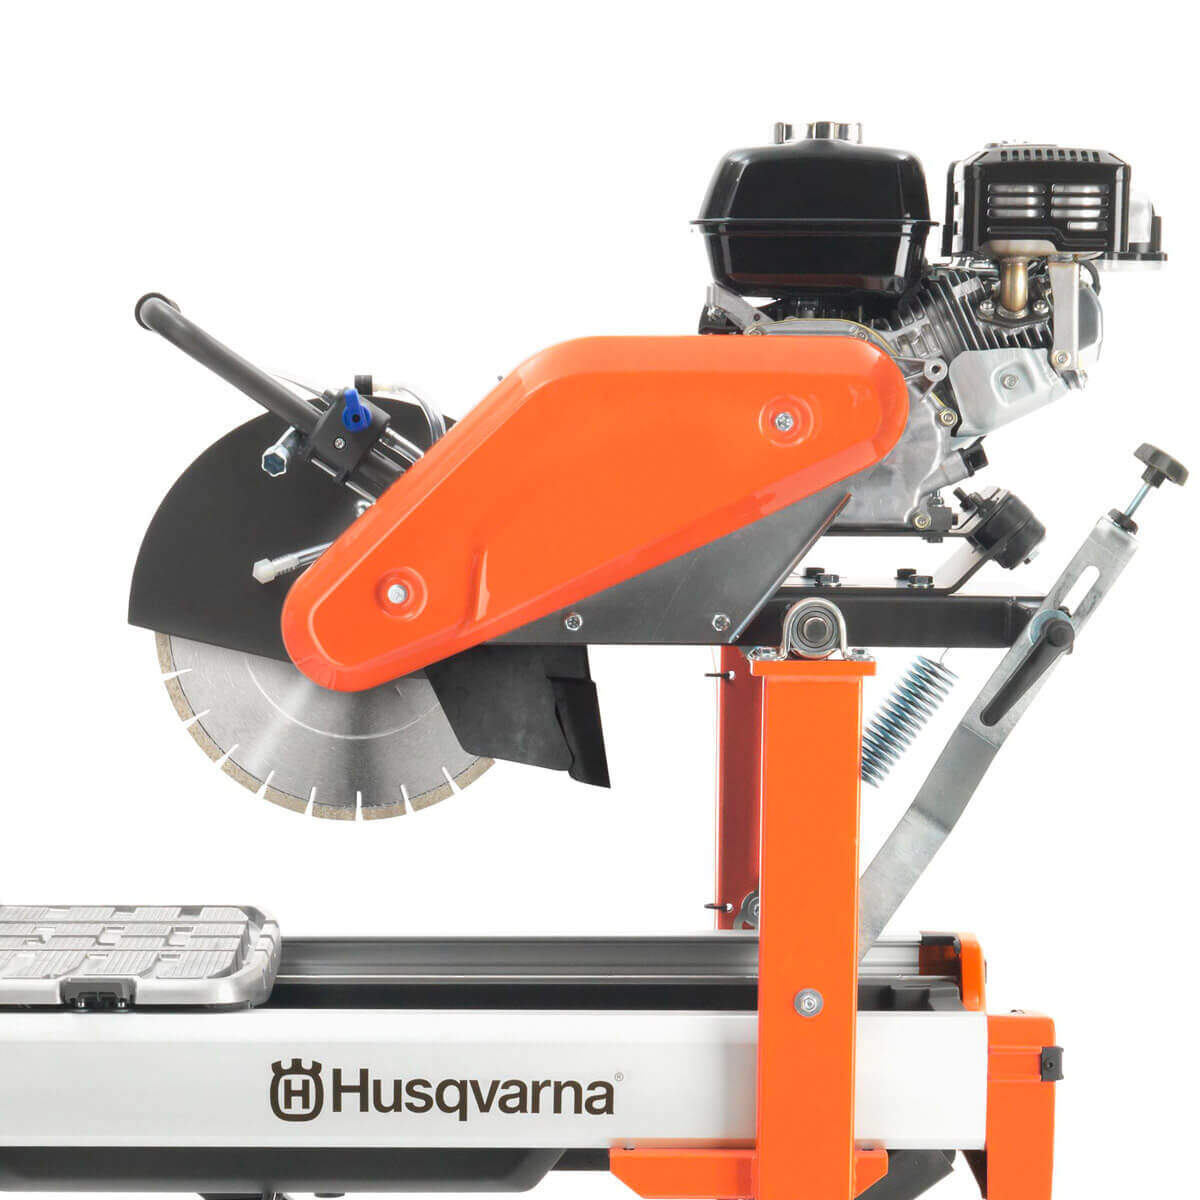 Husqvarna MS 360 G Gas-Powered Masonry Saw